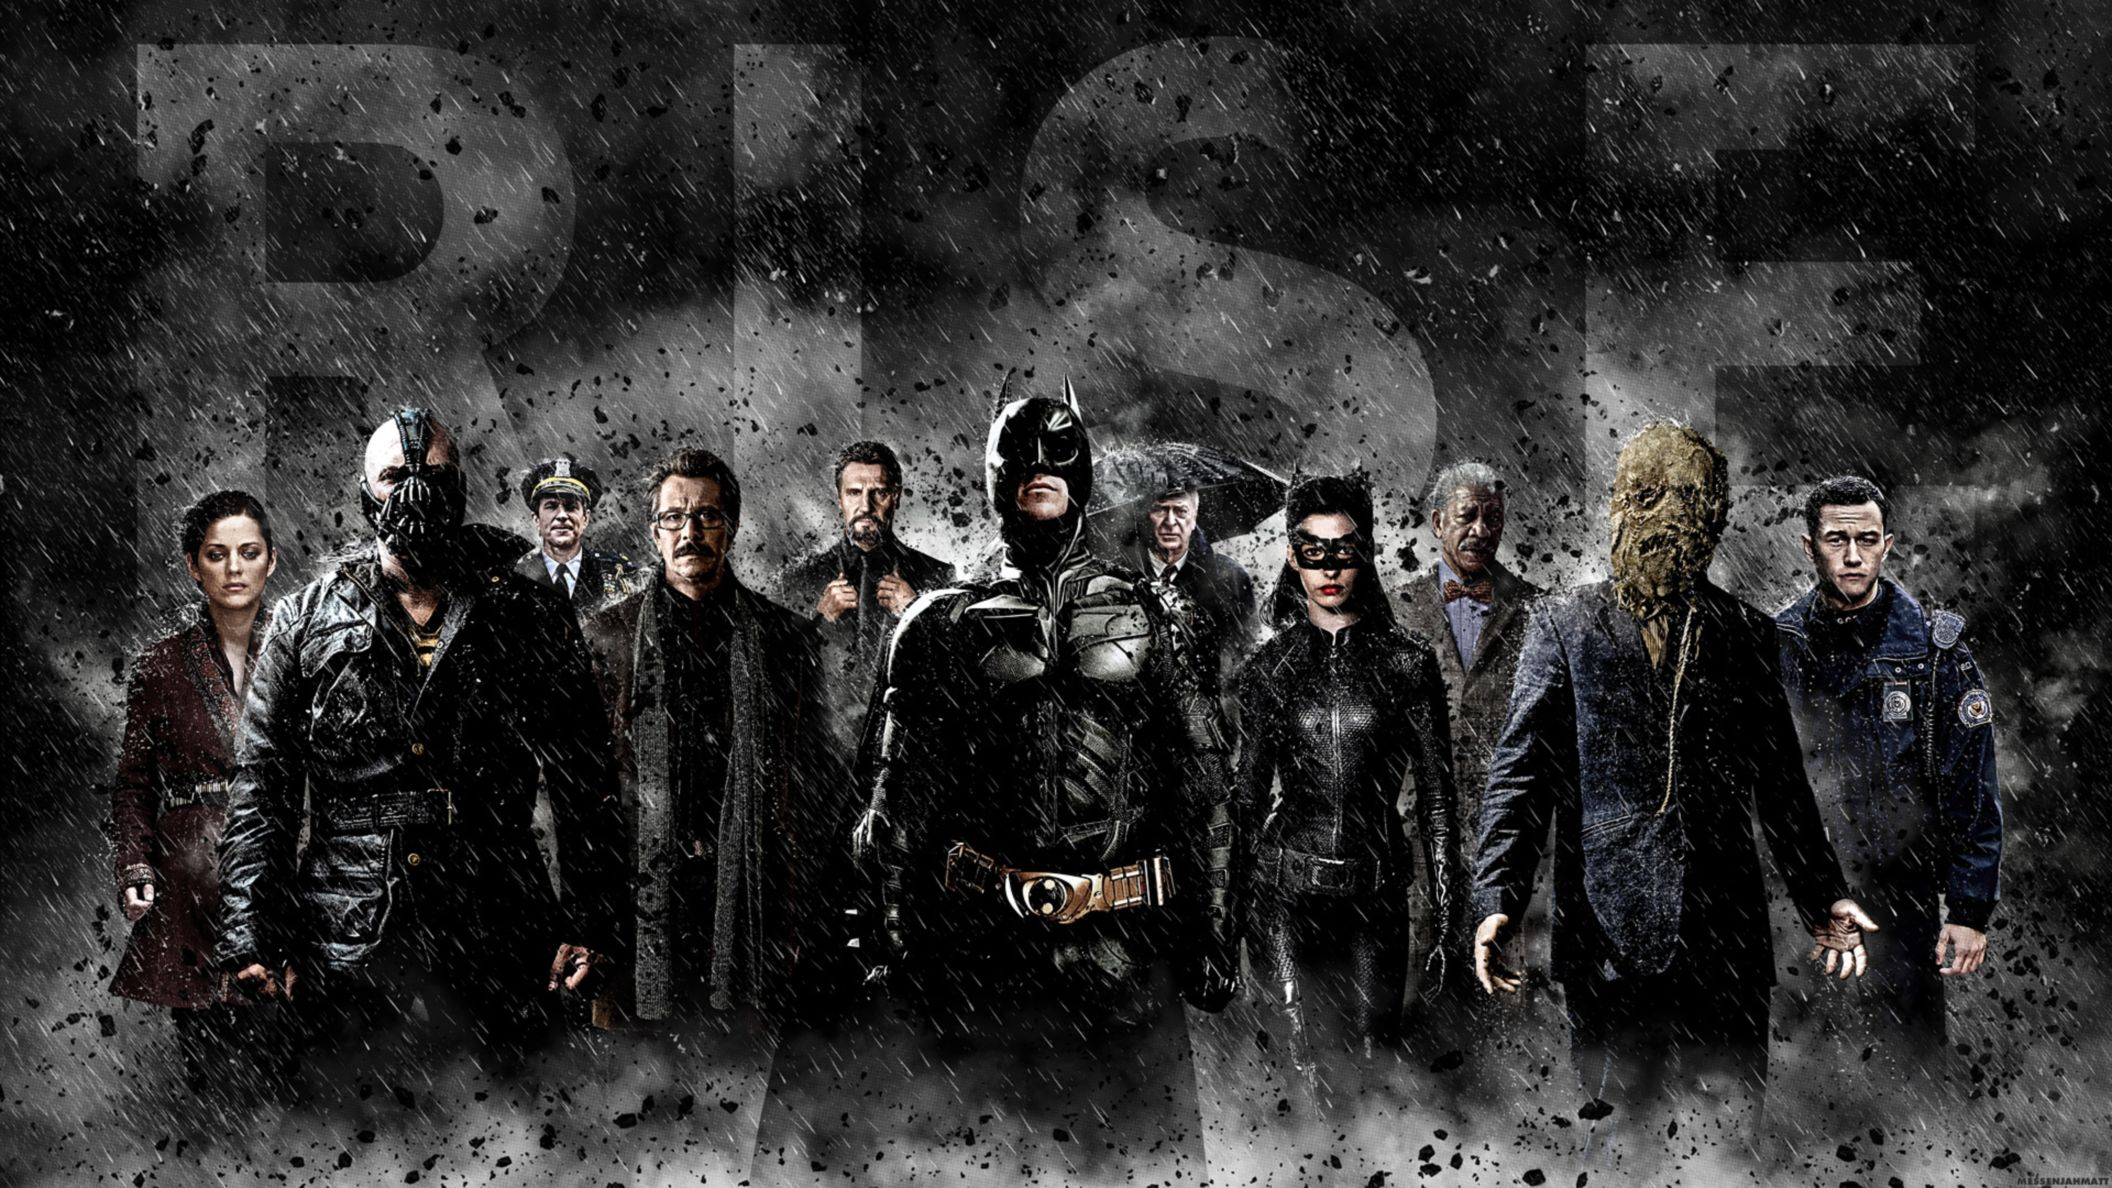 Download free HD The Dark Knight Rises Banner HD Wallpaper, image